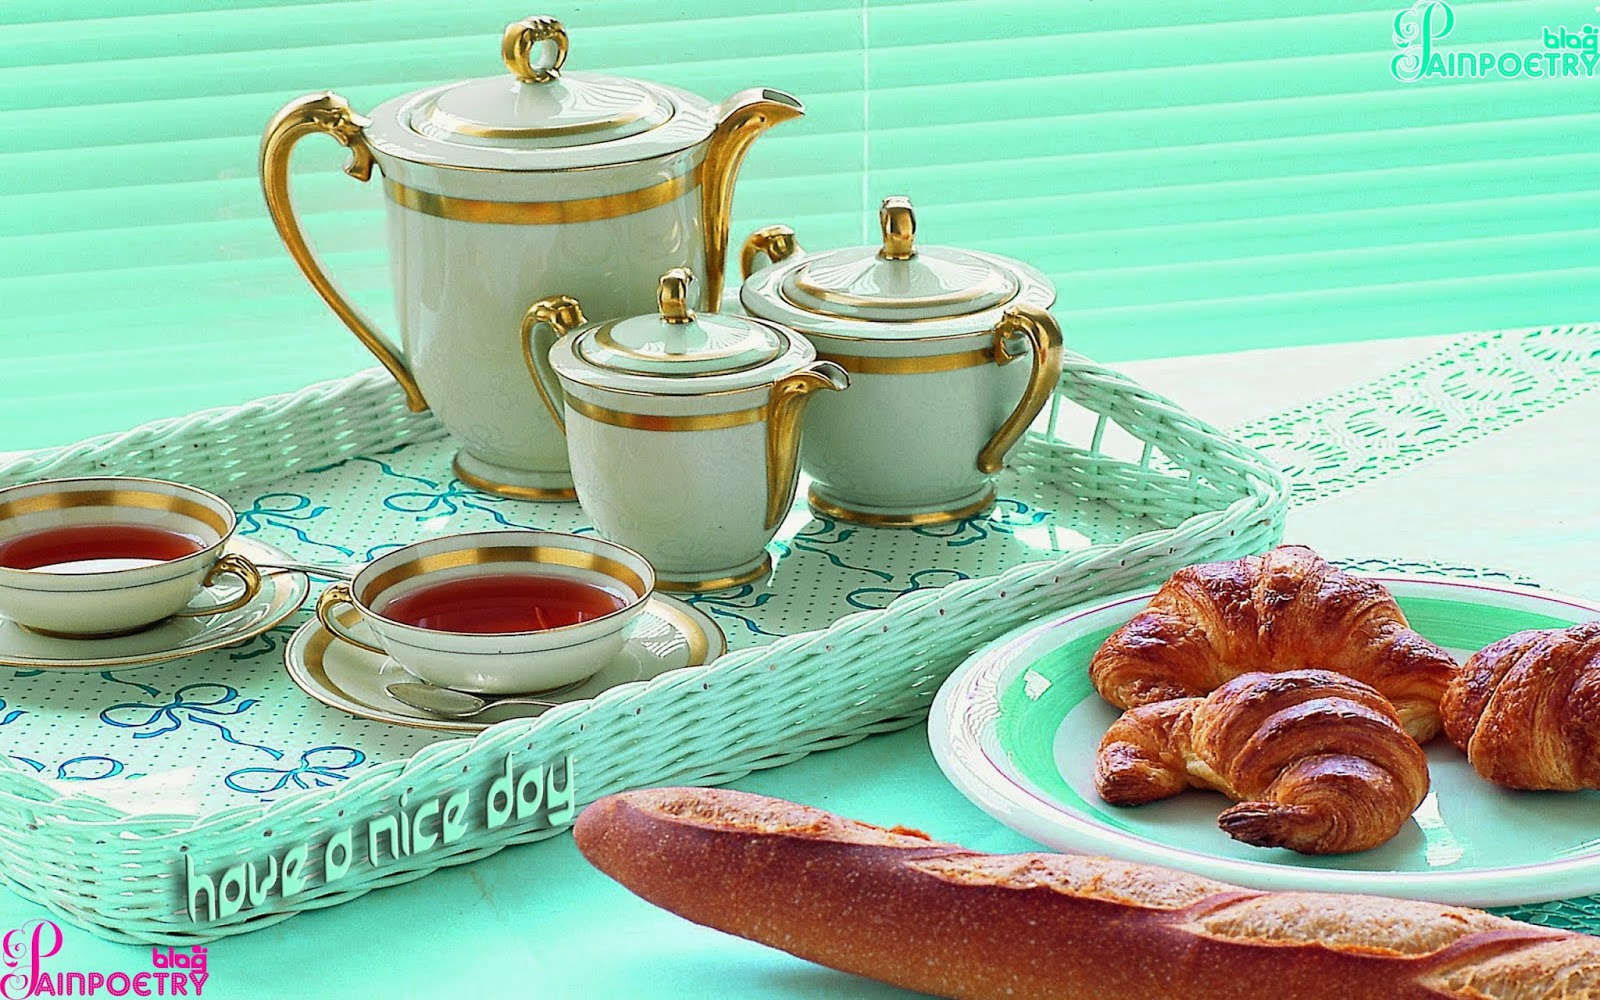 Good-Morning-Wishes-Photo-With-Tea-Set-And-Bread-Wallpaper-Wide